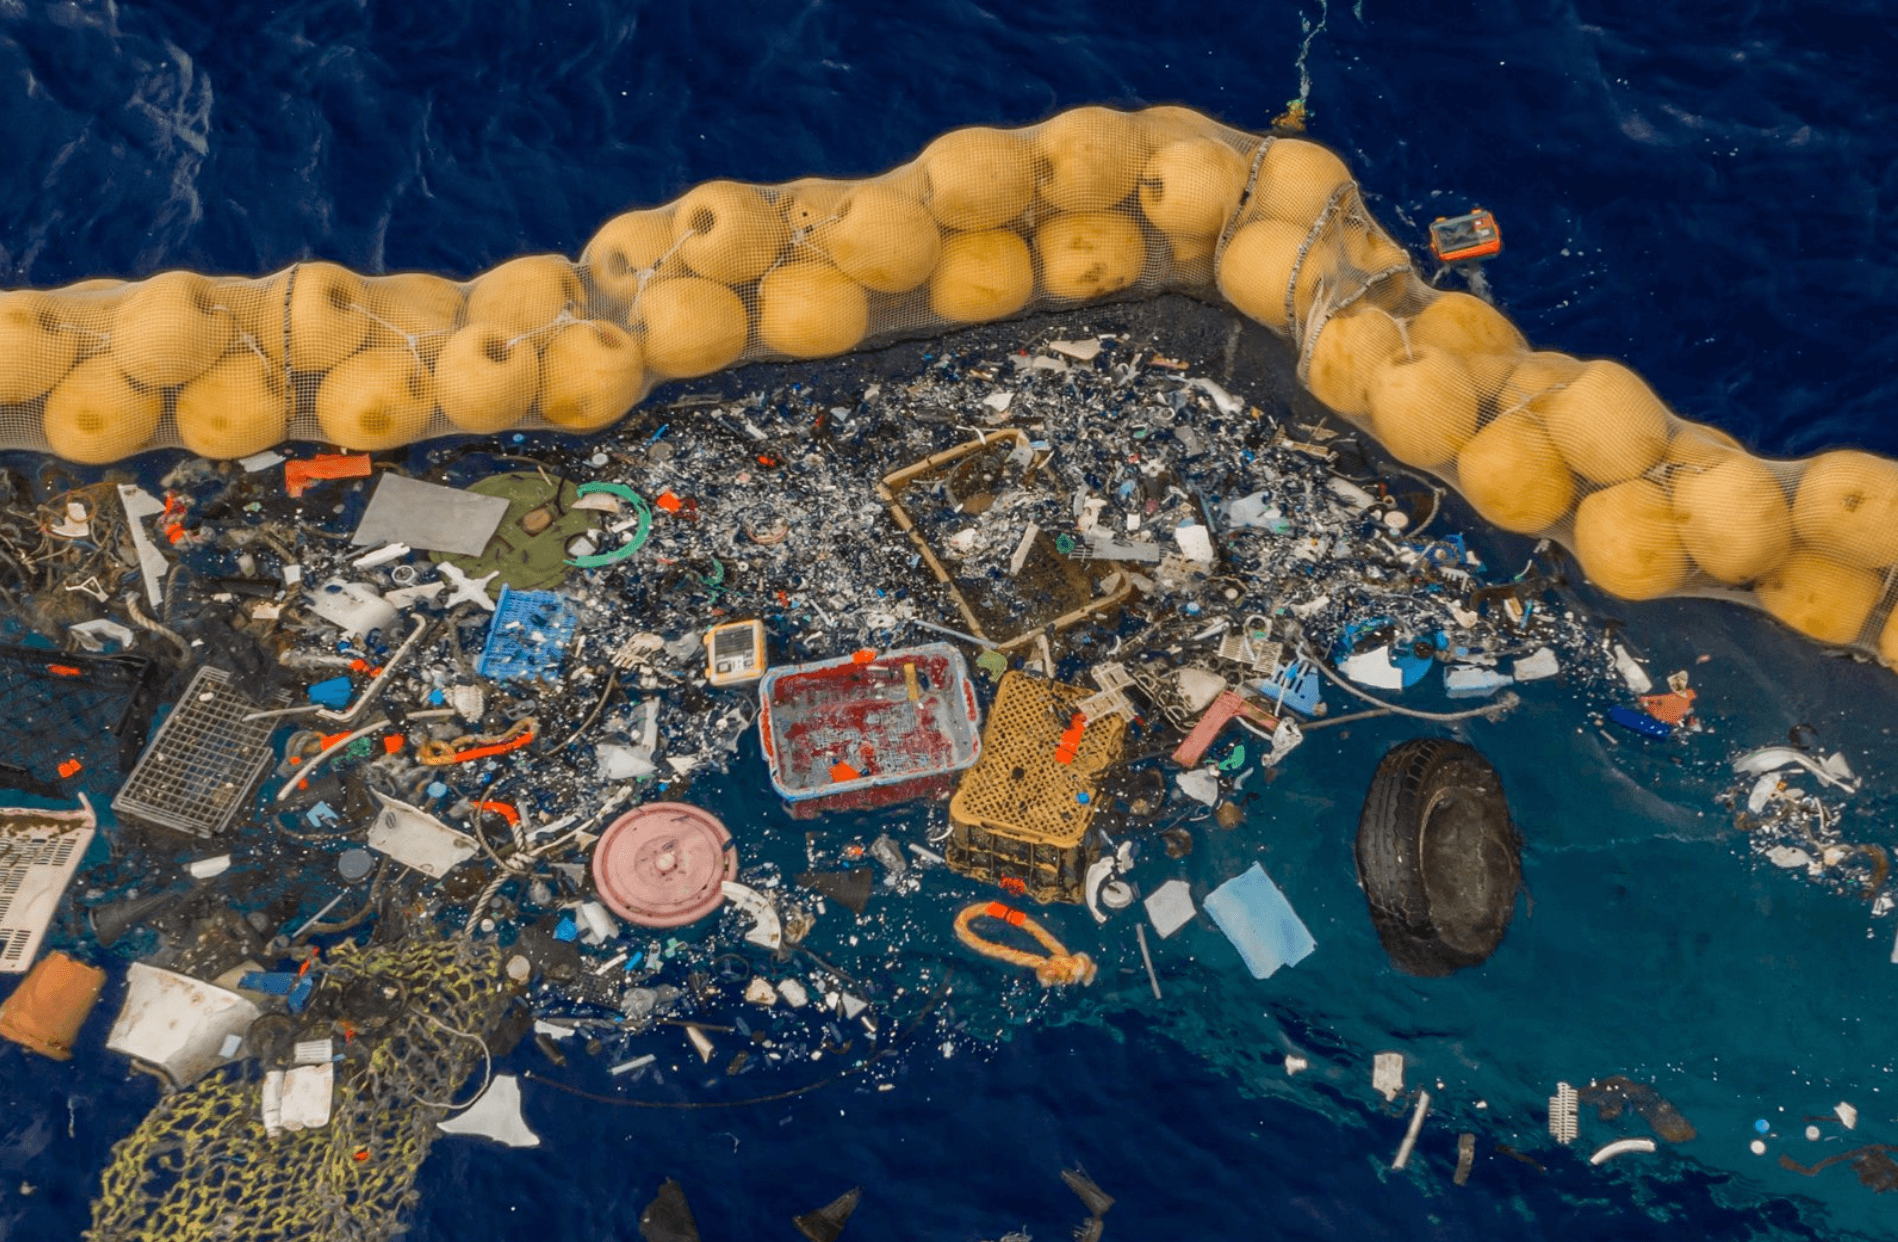 Plastics Will Outweigh Fish in The Ocean: How Does It Affect You and What Should You Do?